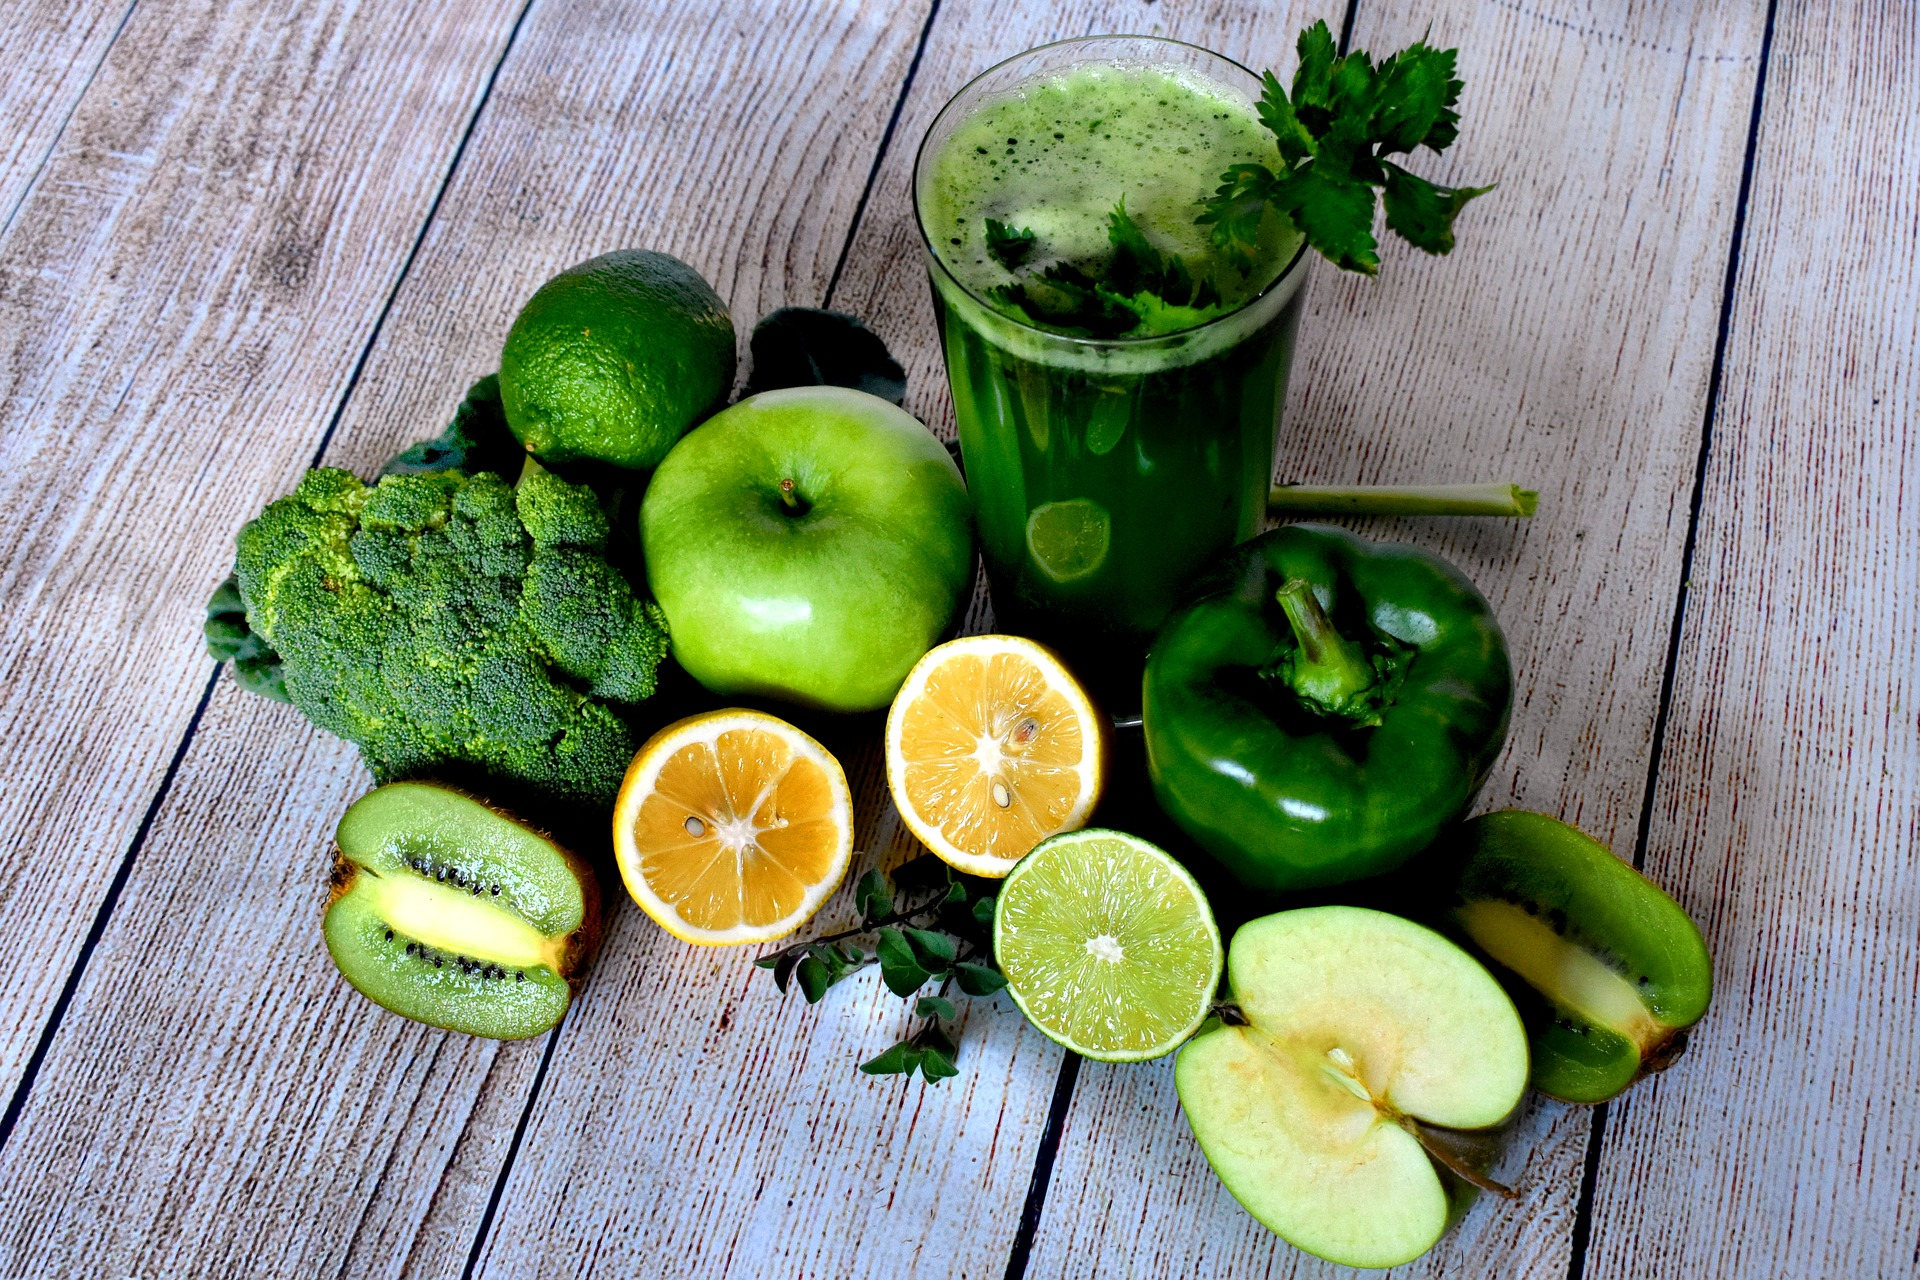 aliment detoxifiant cancer bucal manifestare